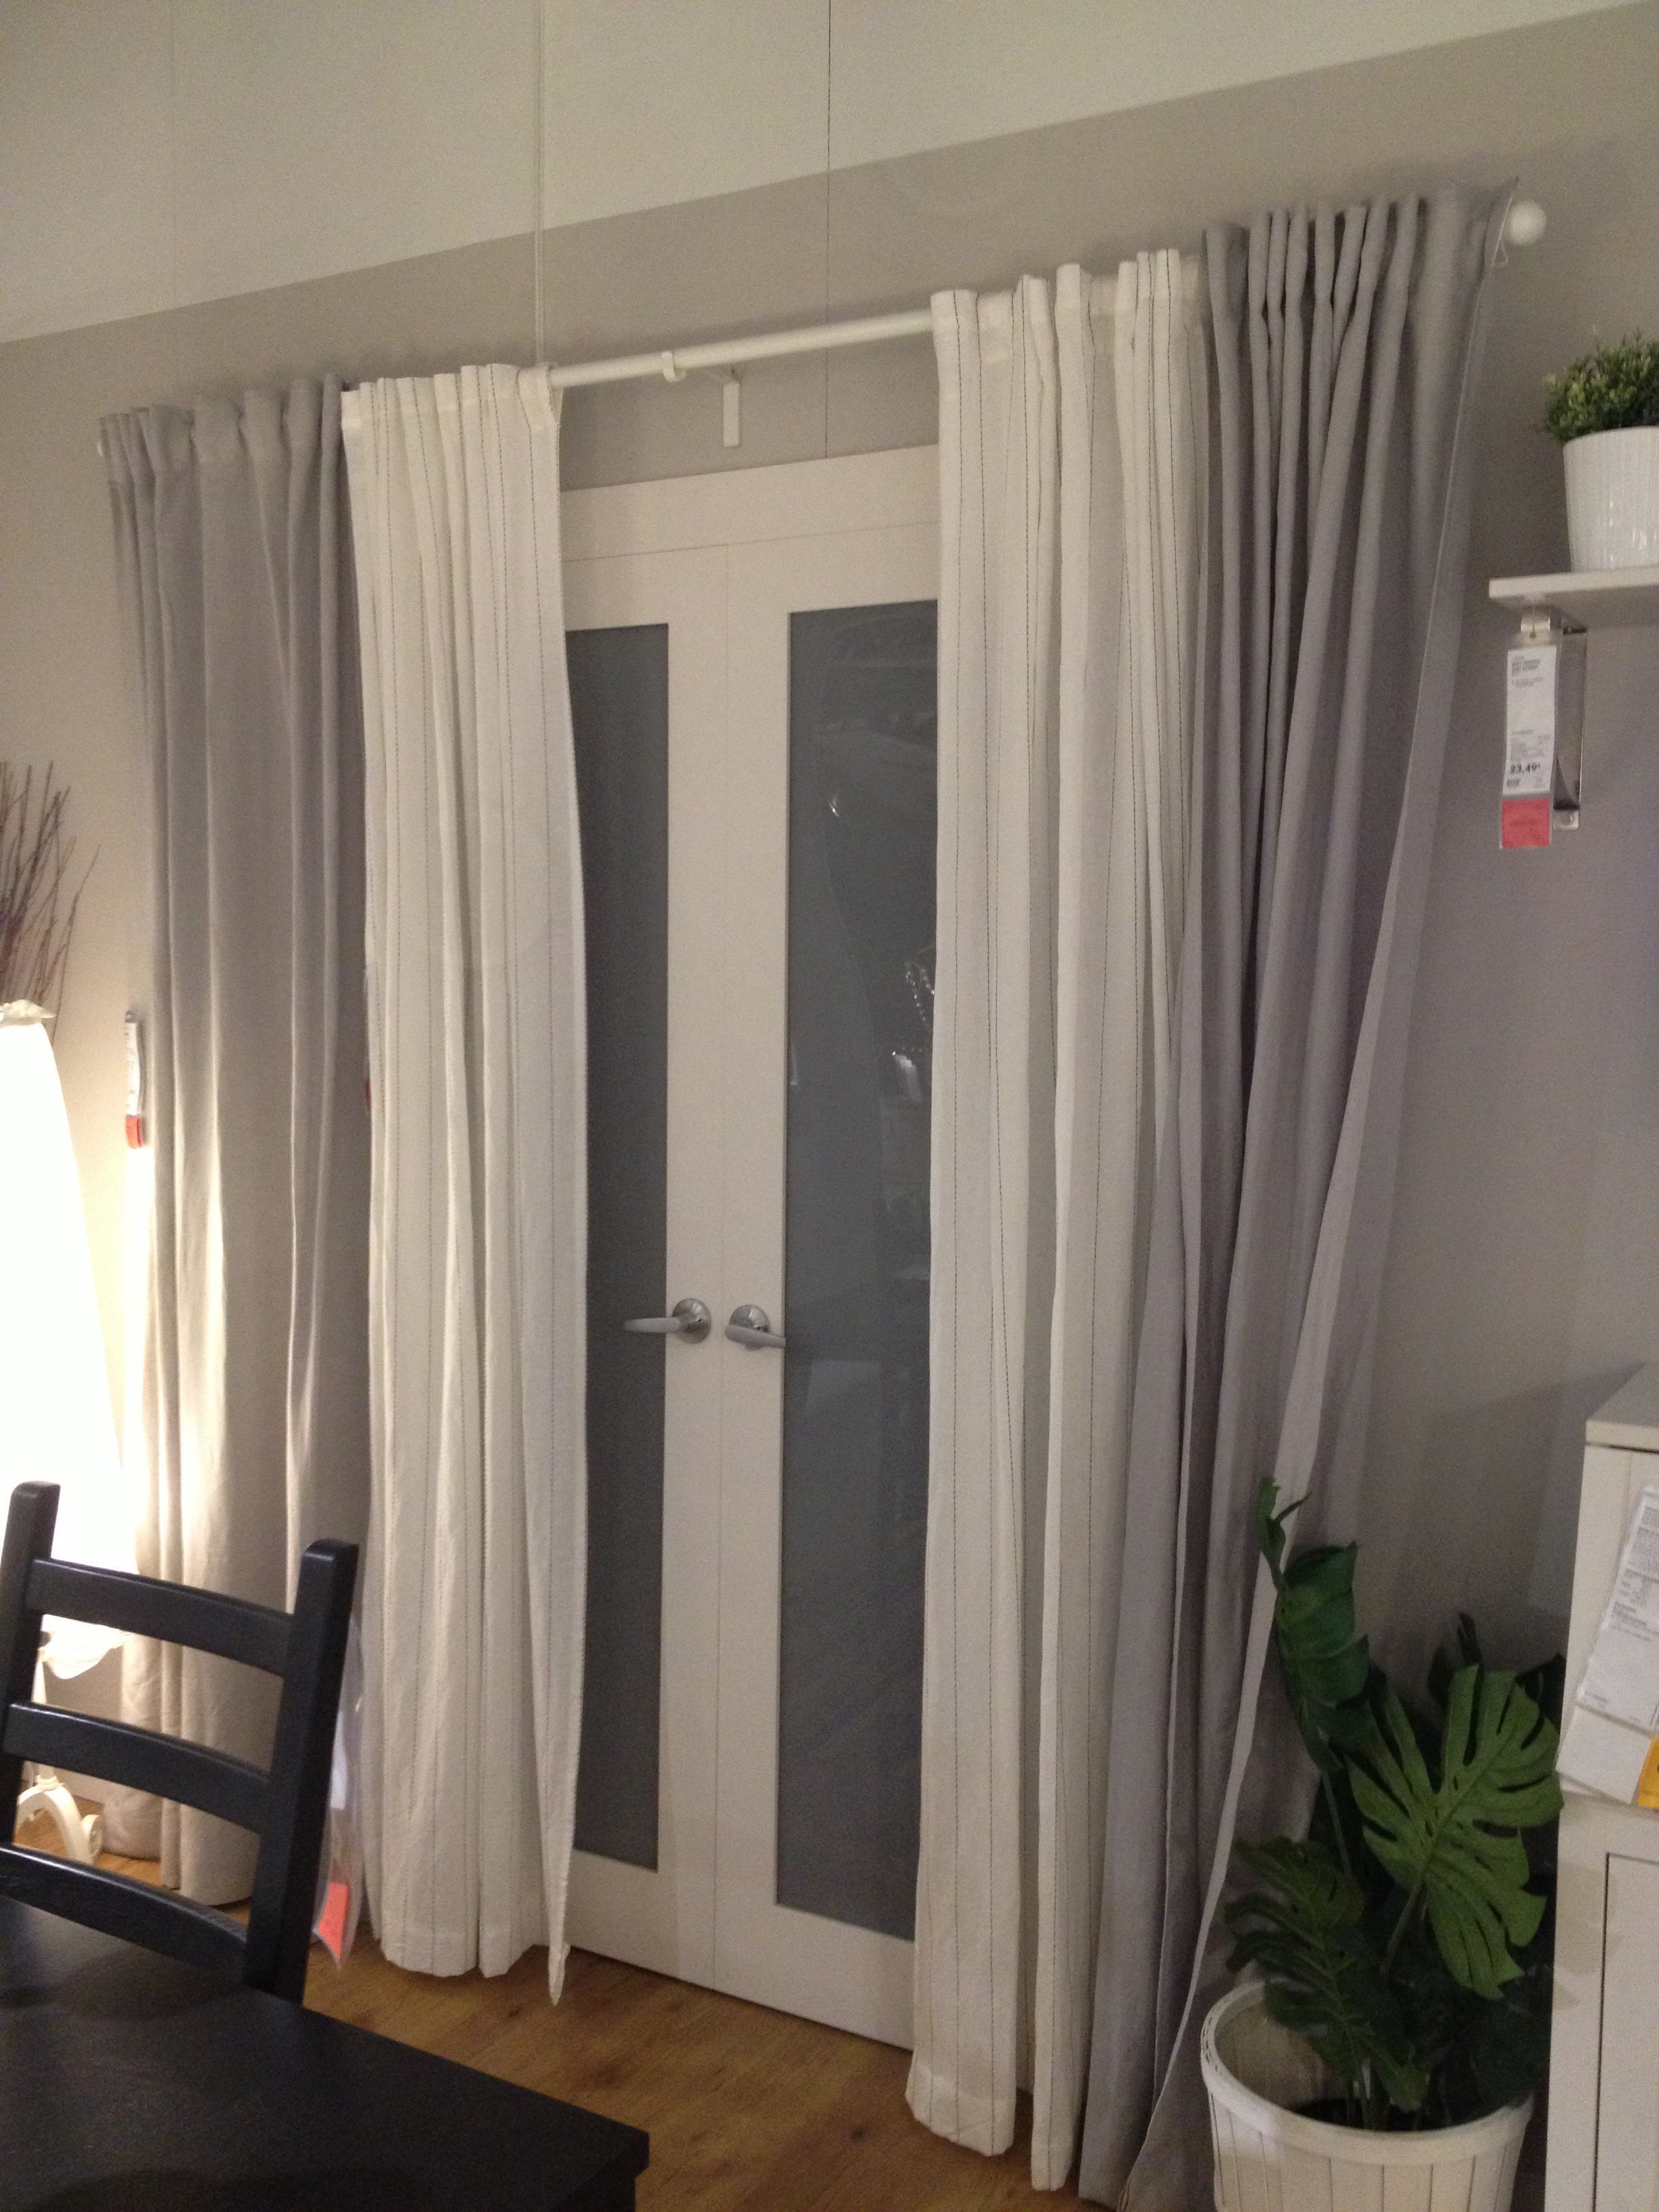 Sliding Door Curtain Back Patio Door Curtains Let Sunlight In During The Day Keep